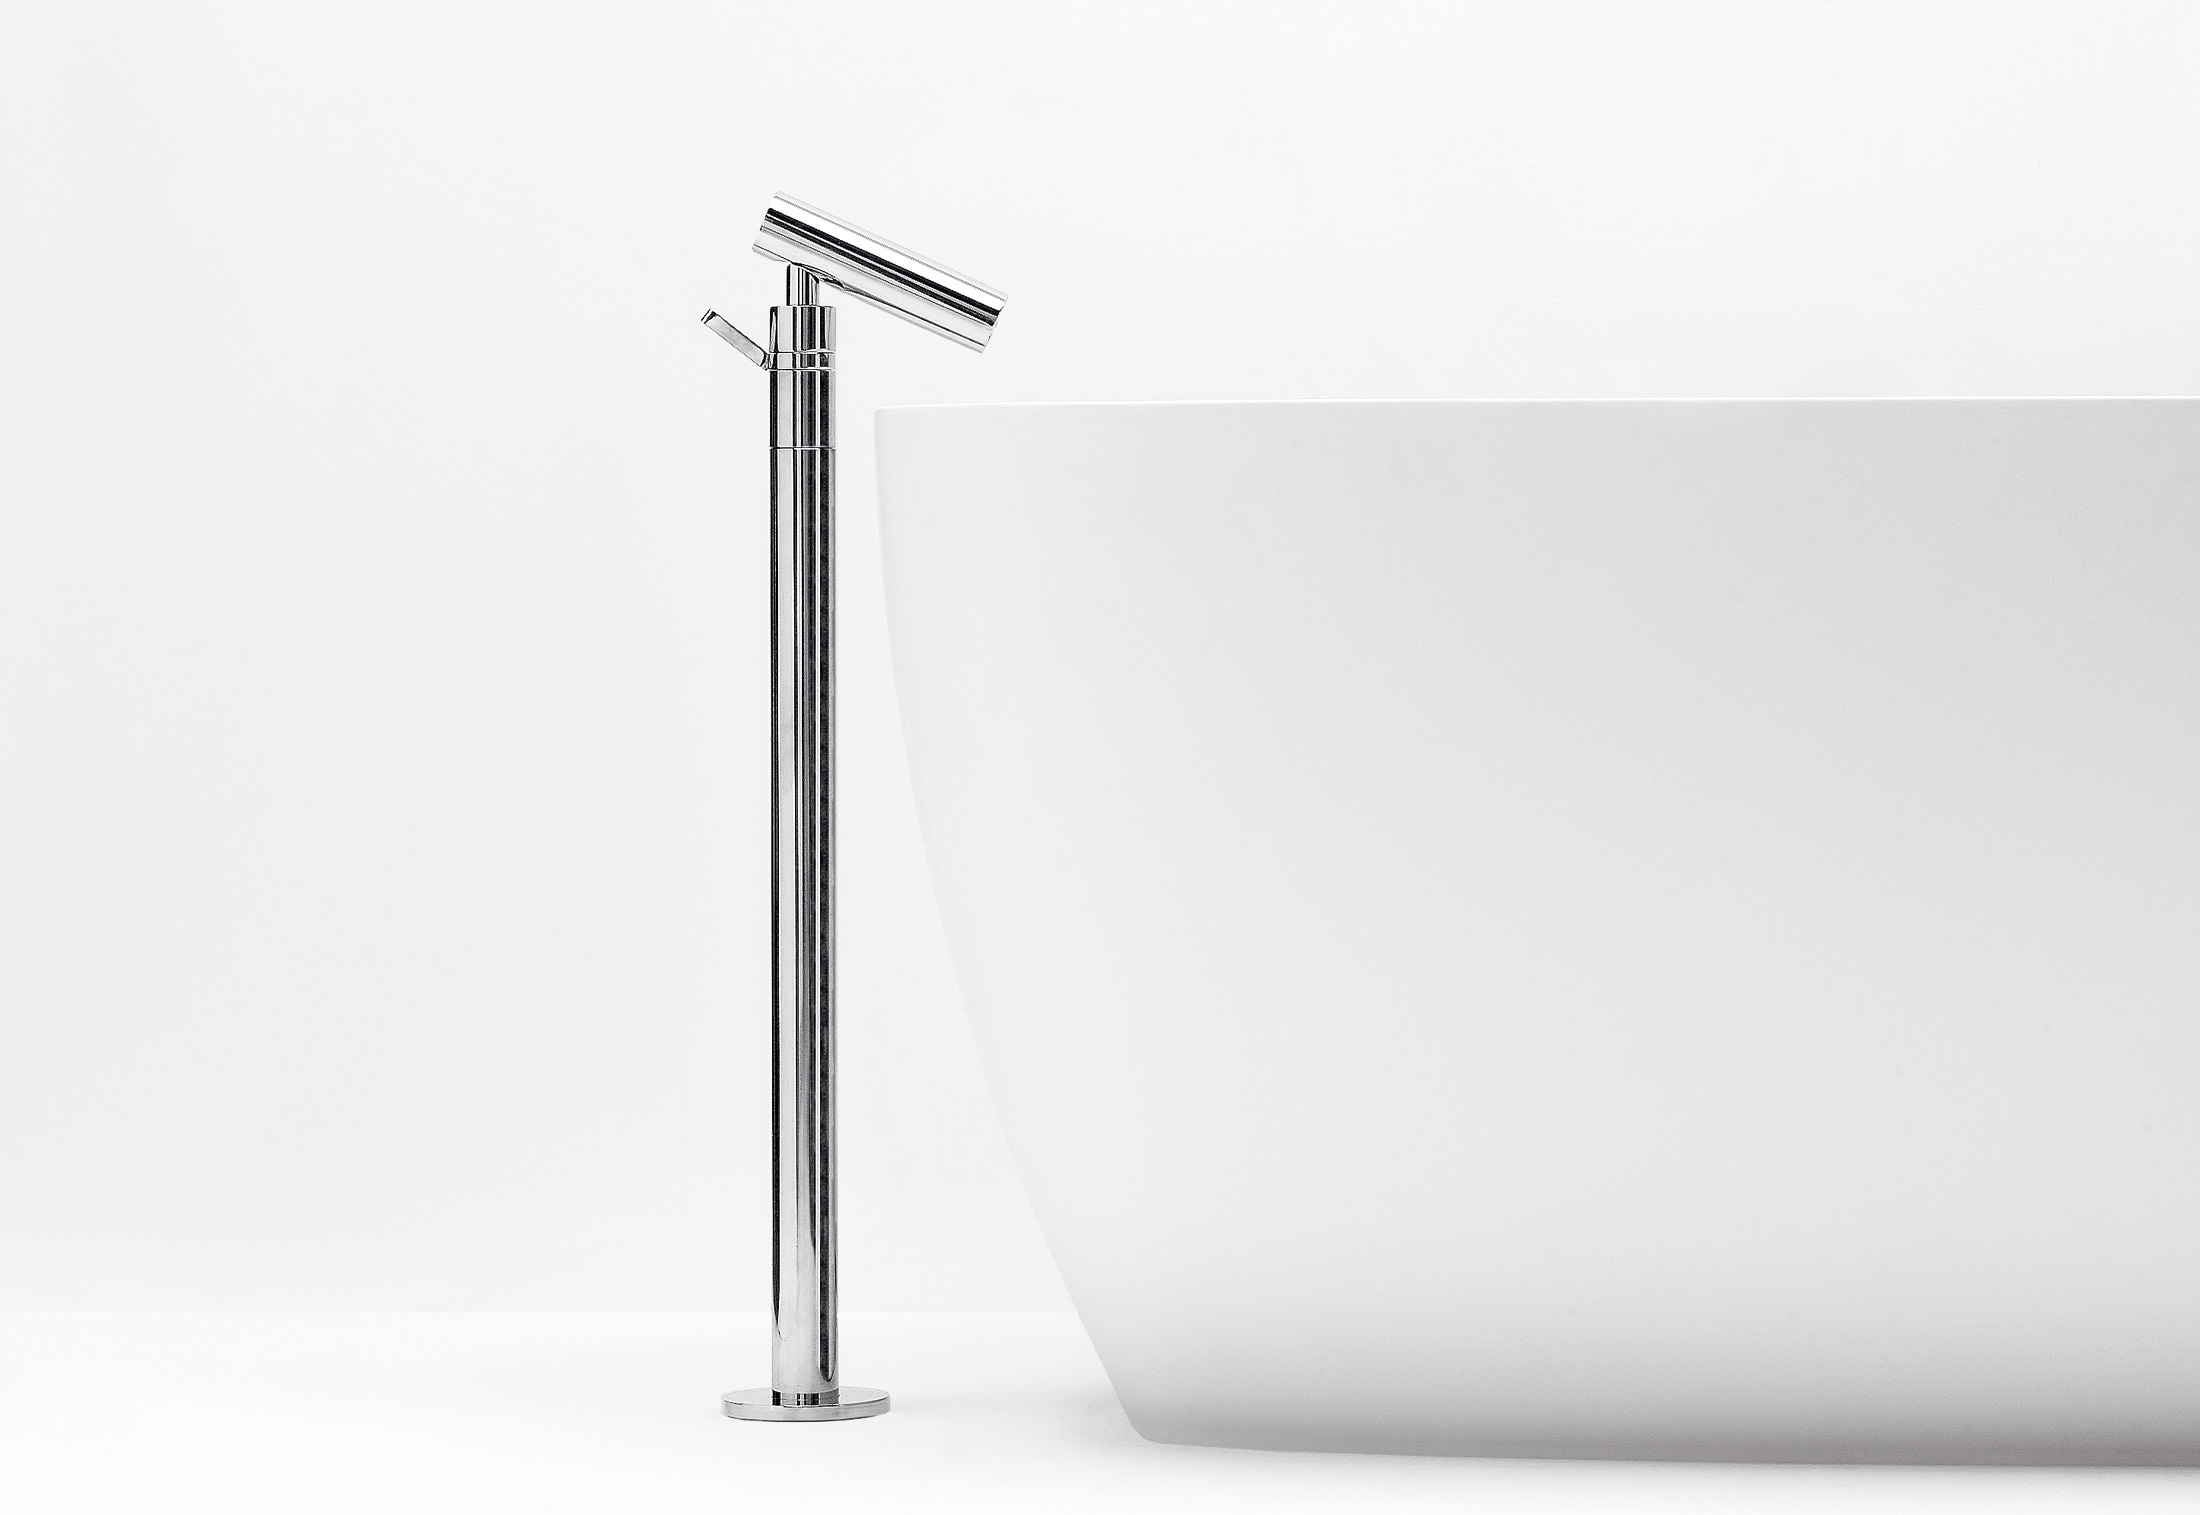 agape contemporary minimalist freestanding tub filler with 35 degree spout and lever handle in polished chrome - the ultimate guide to luxury plumbing by the delight of design